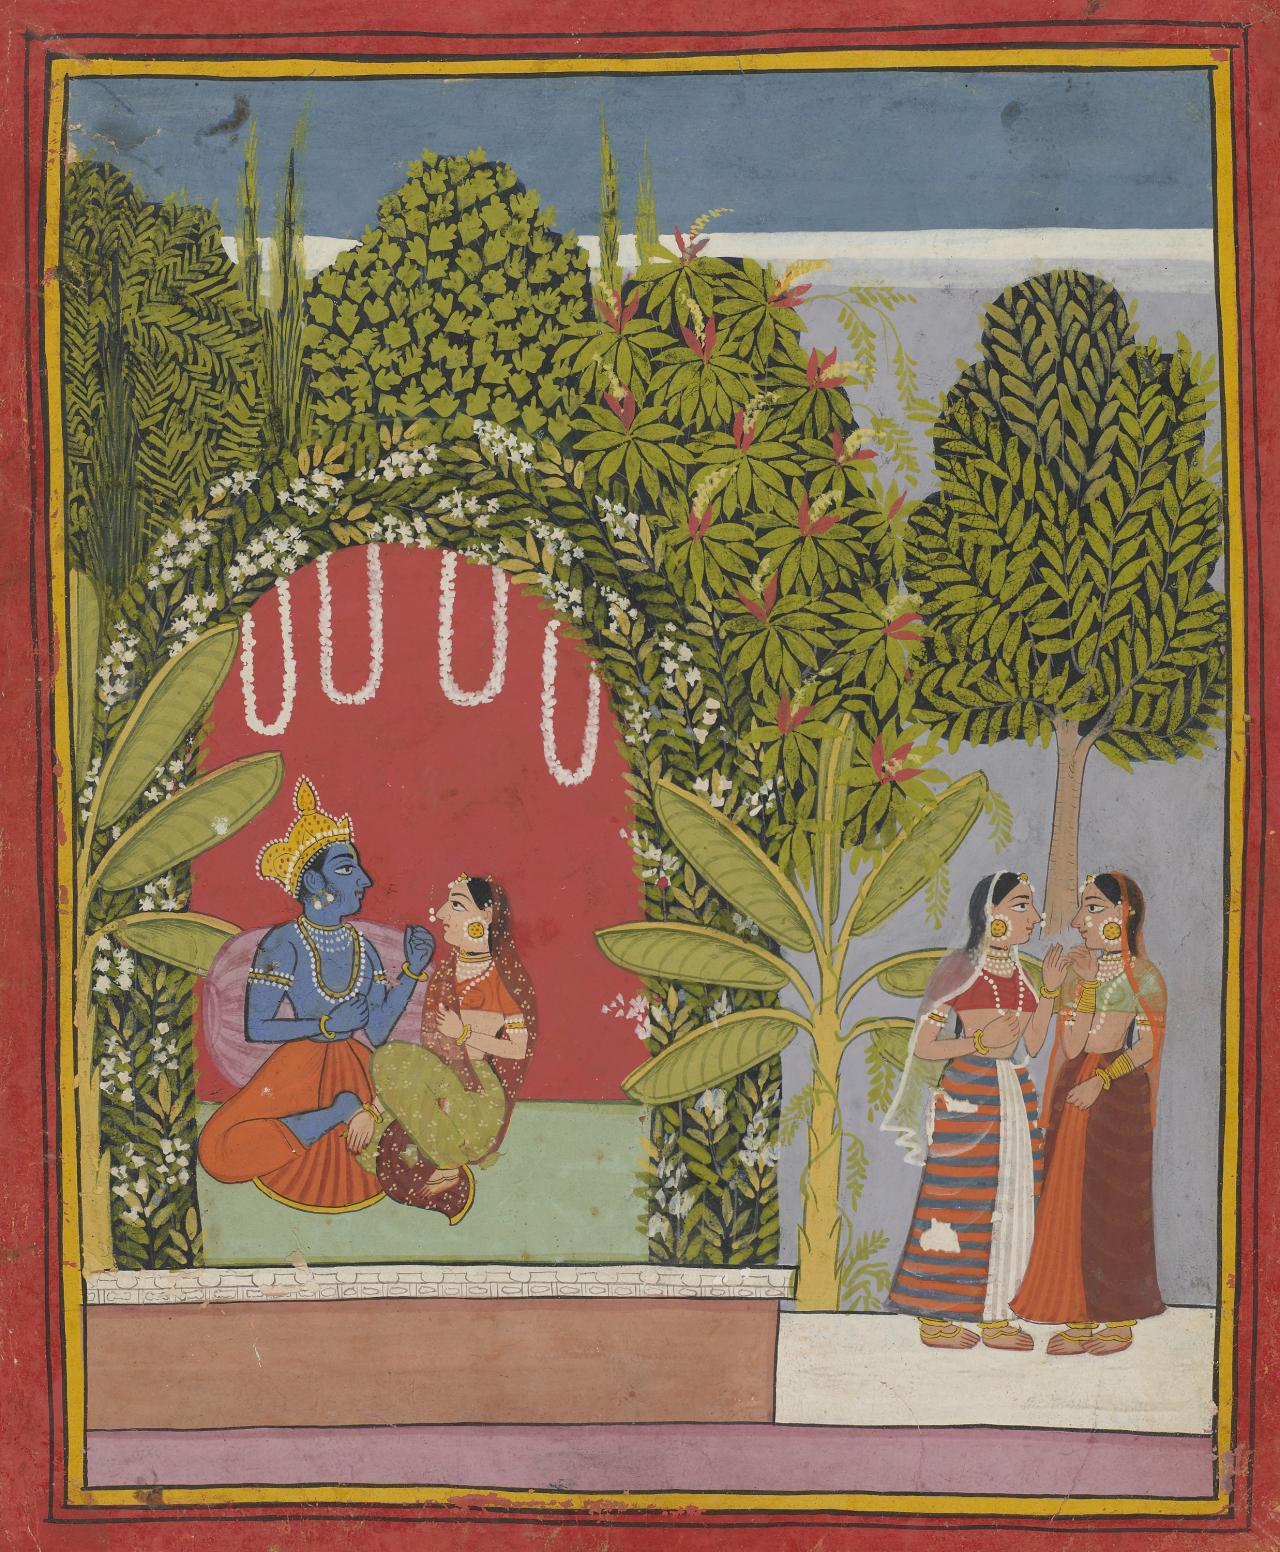 Krishna and Radha in a bower